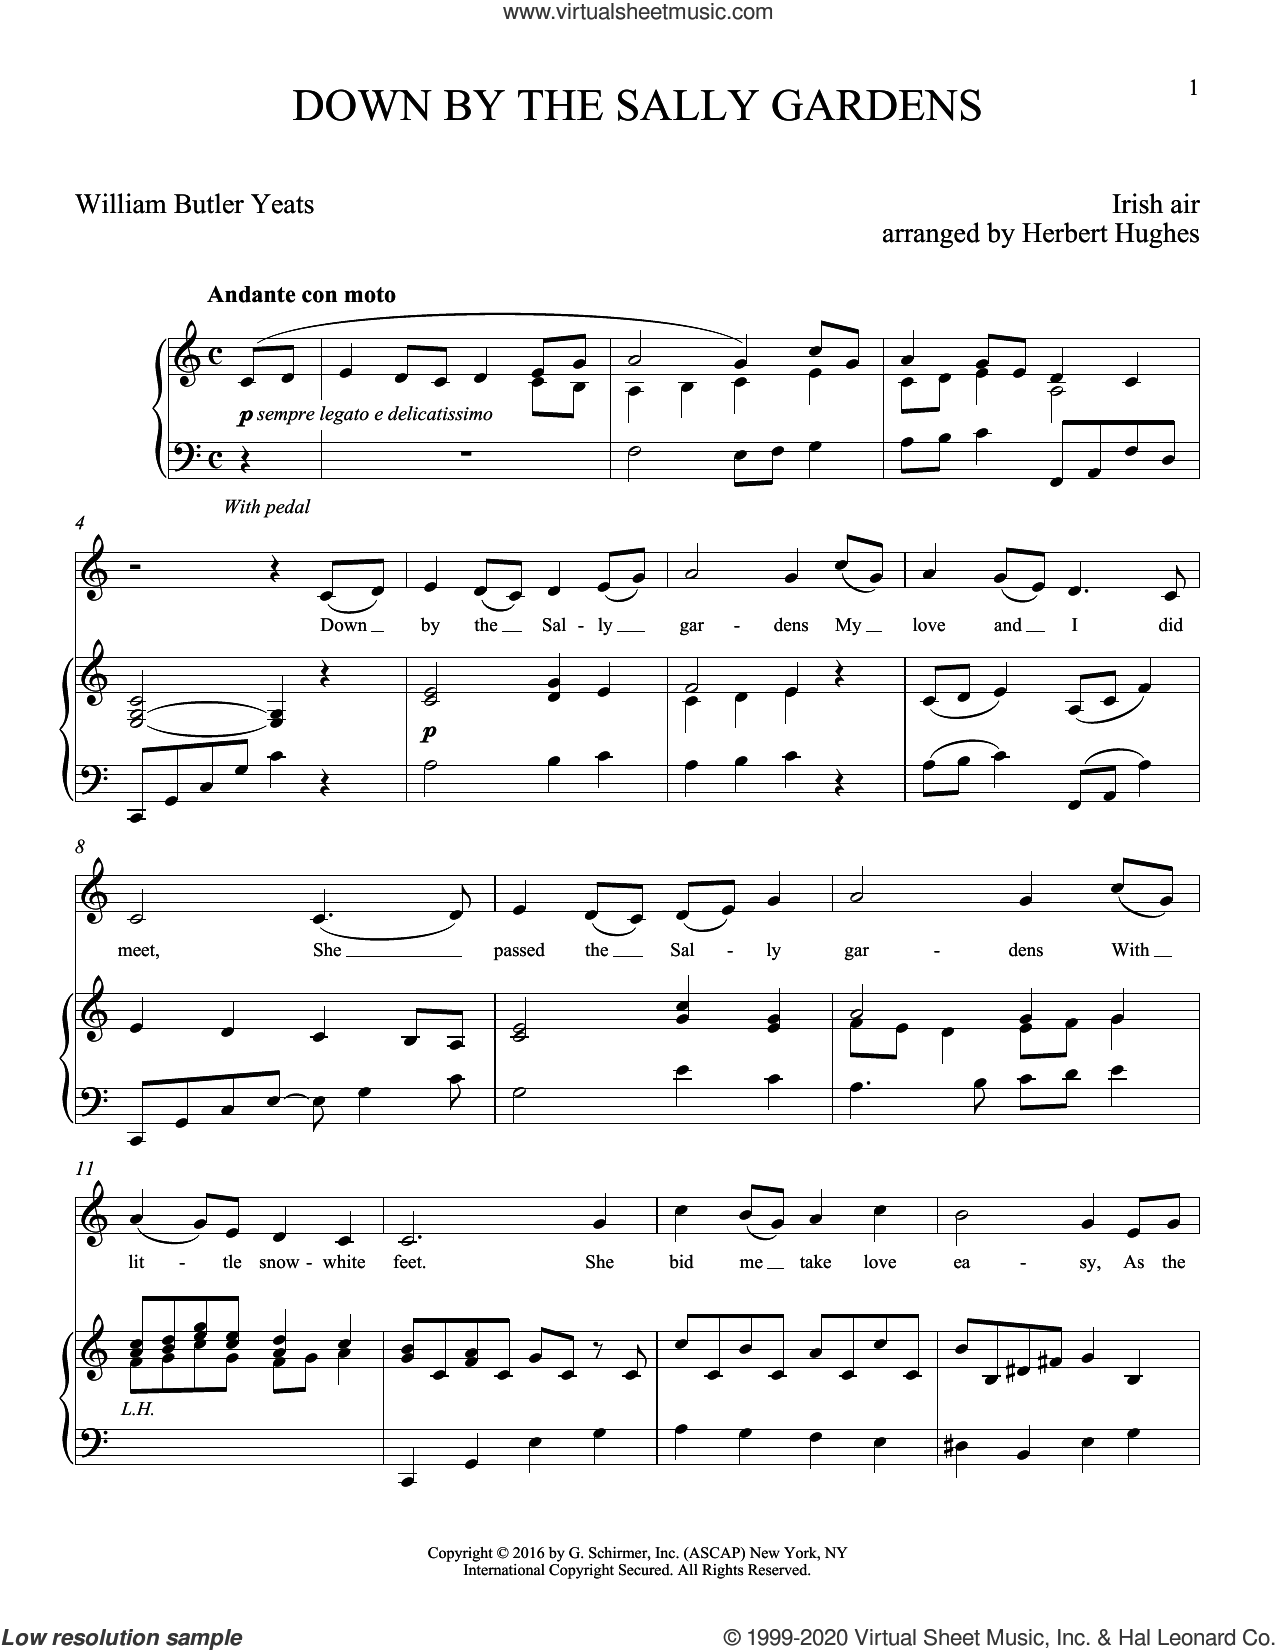 Down By The Sally Gardens sheet music for voice and piano by William Butler Yeats, Joan Frey Boytim, Herbert Hughes and Shore', intermediate skill level